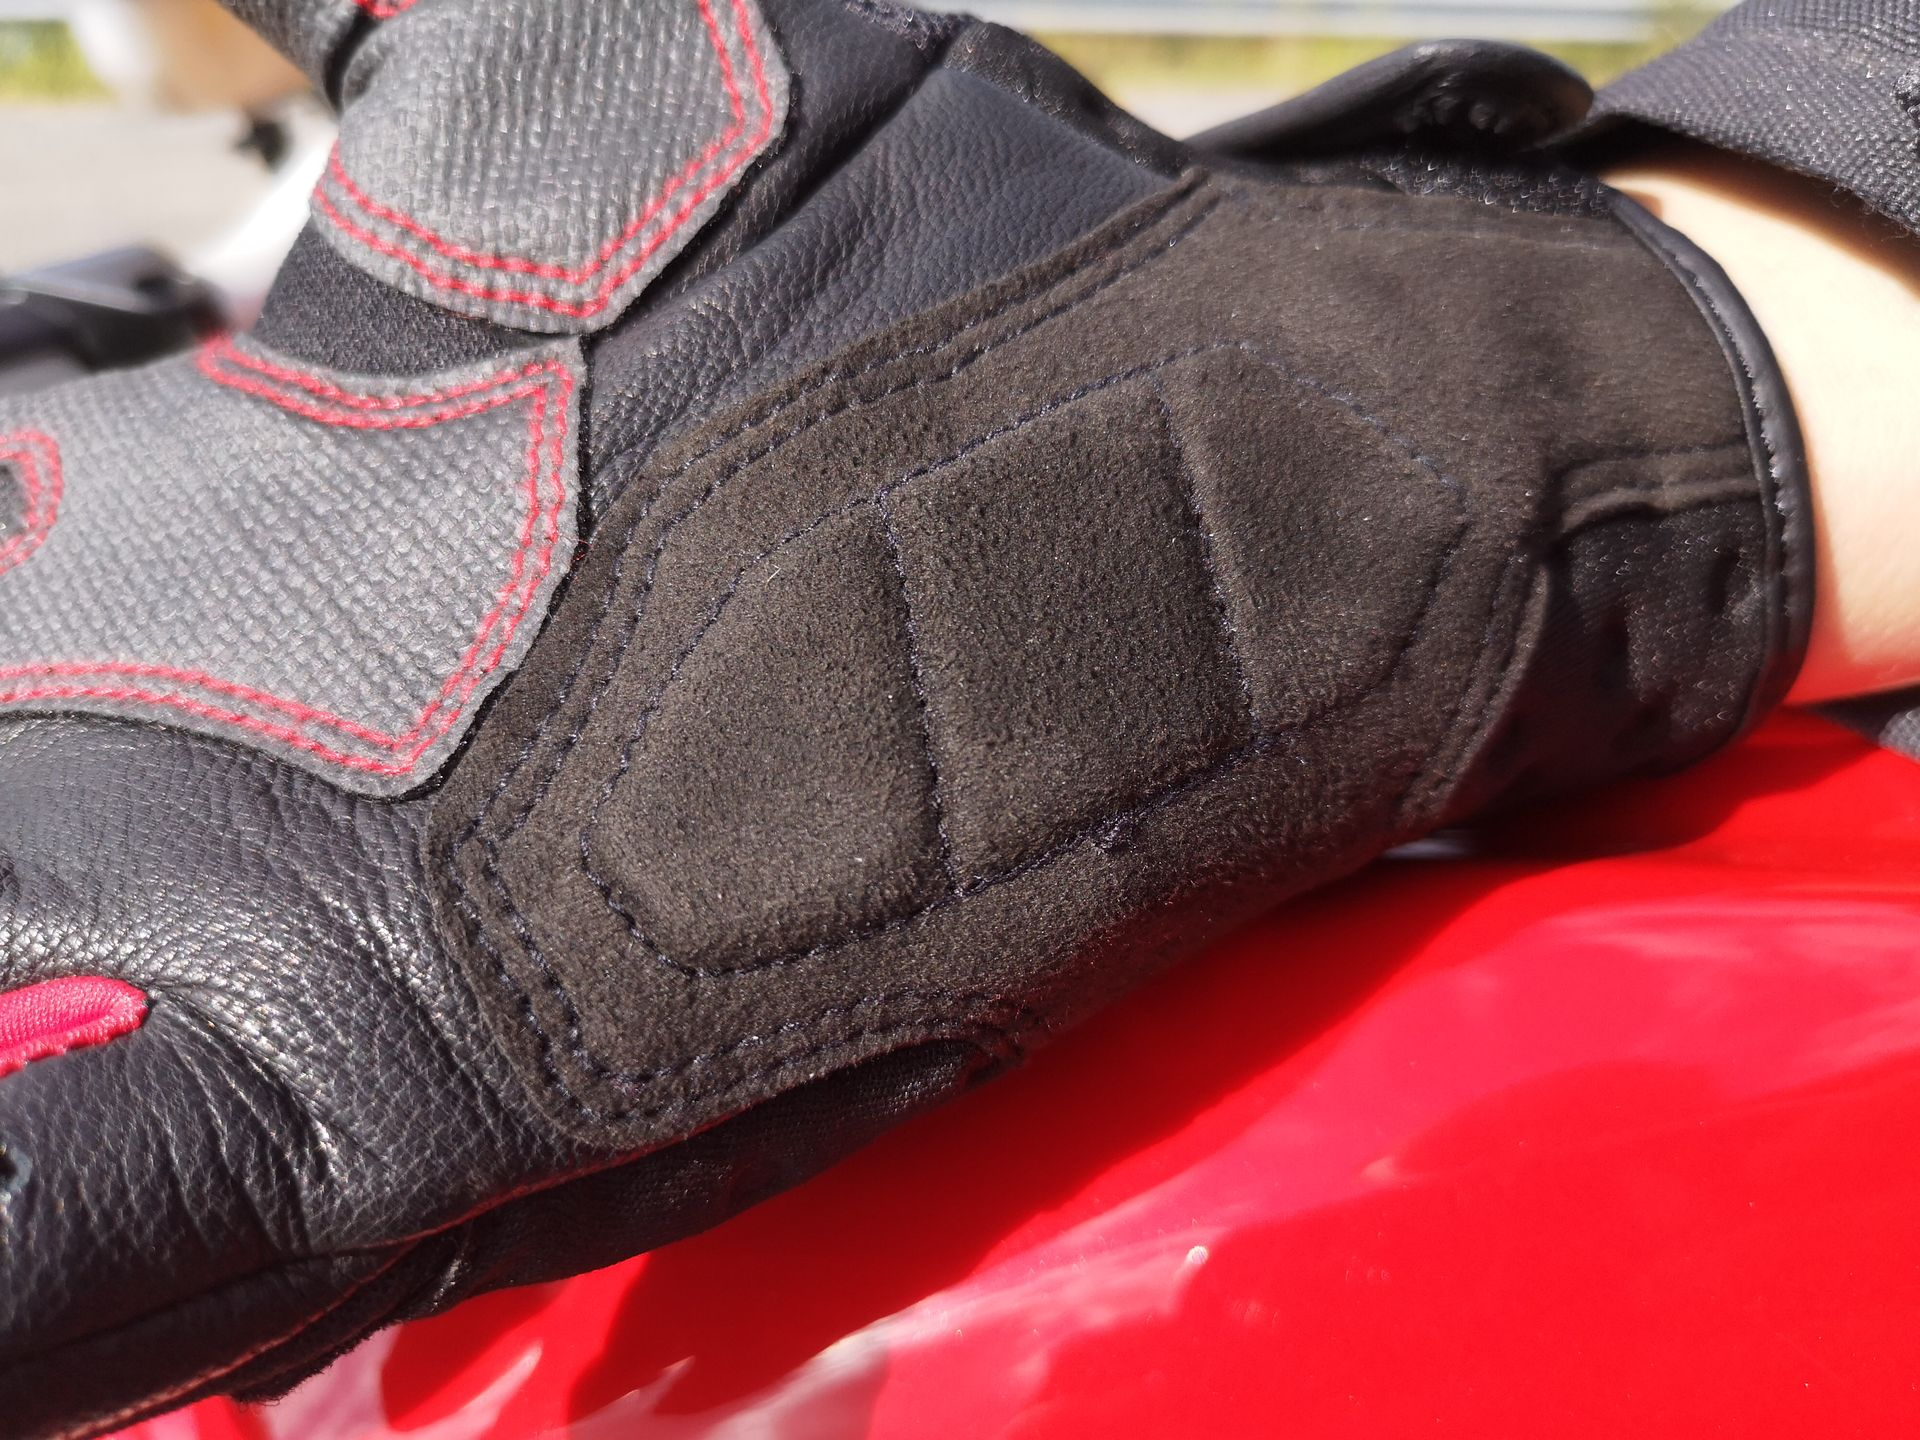 Inserts confort en mousse sur les gants AlpineStars Kinetic